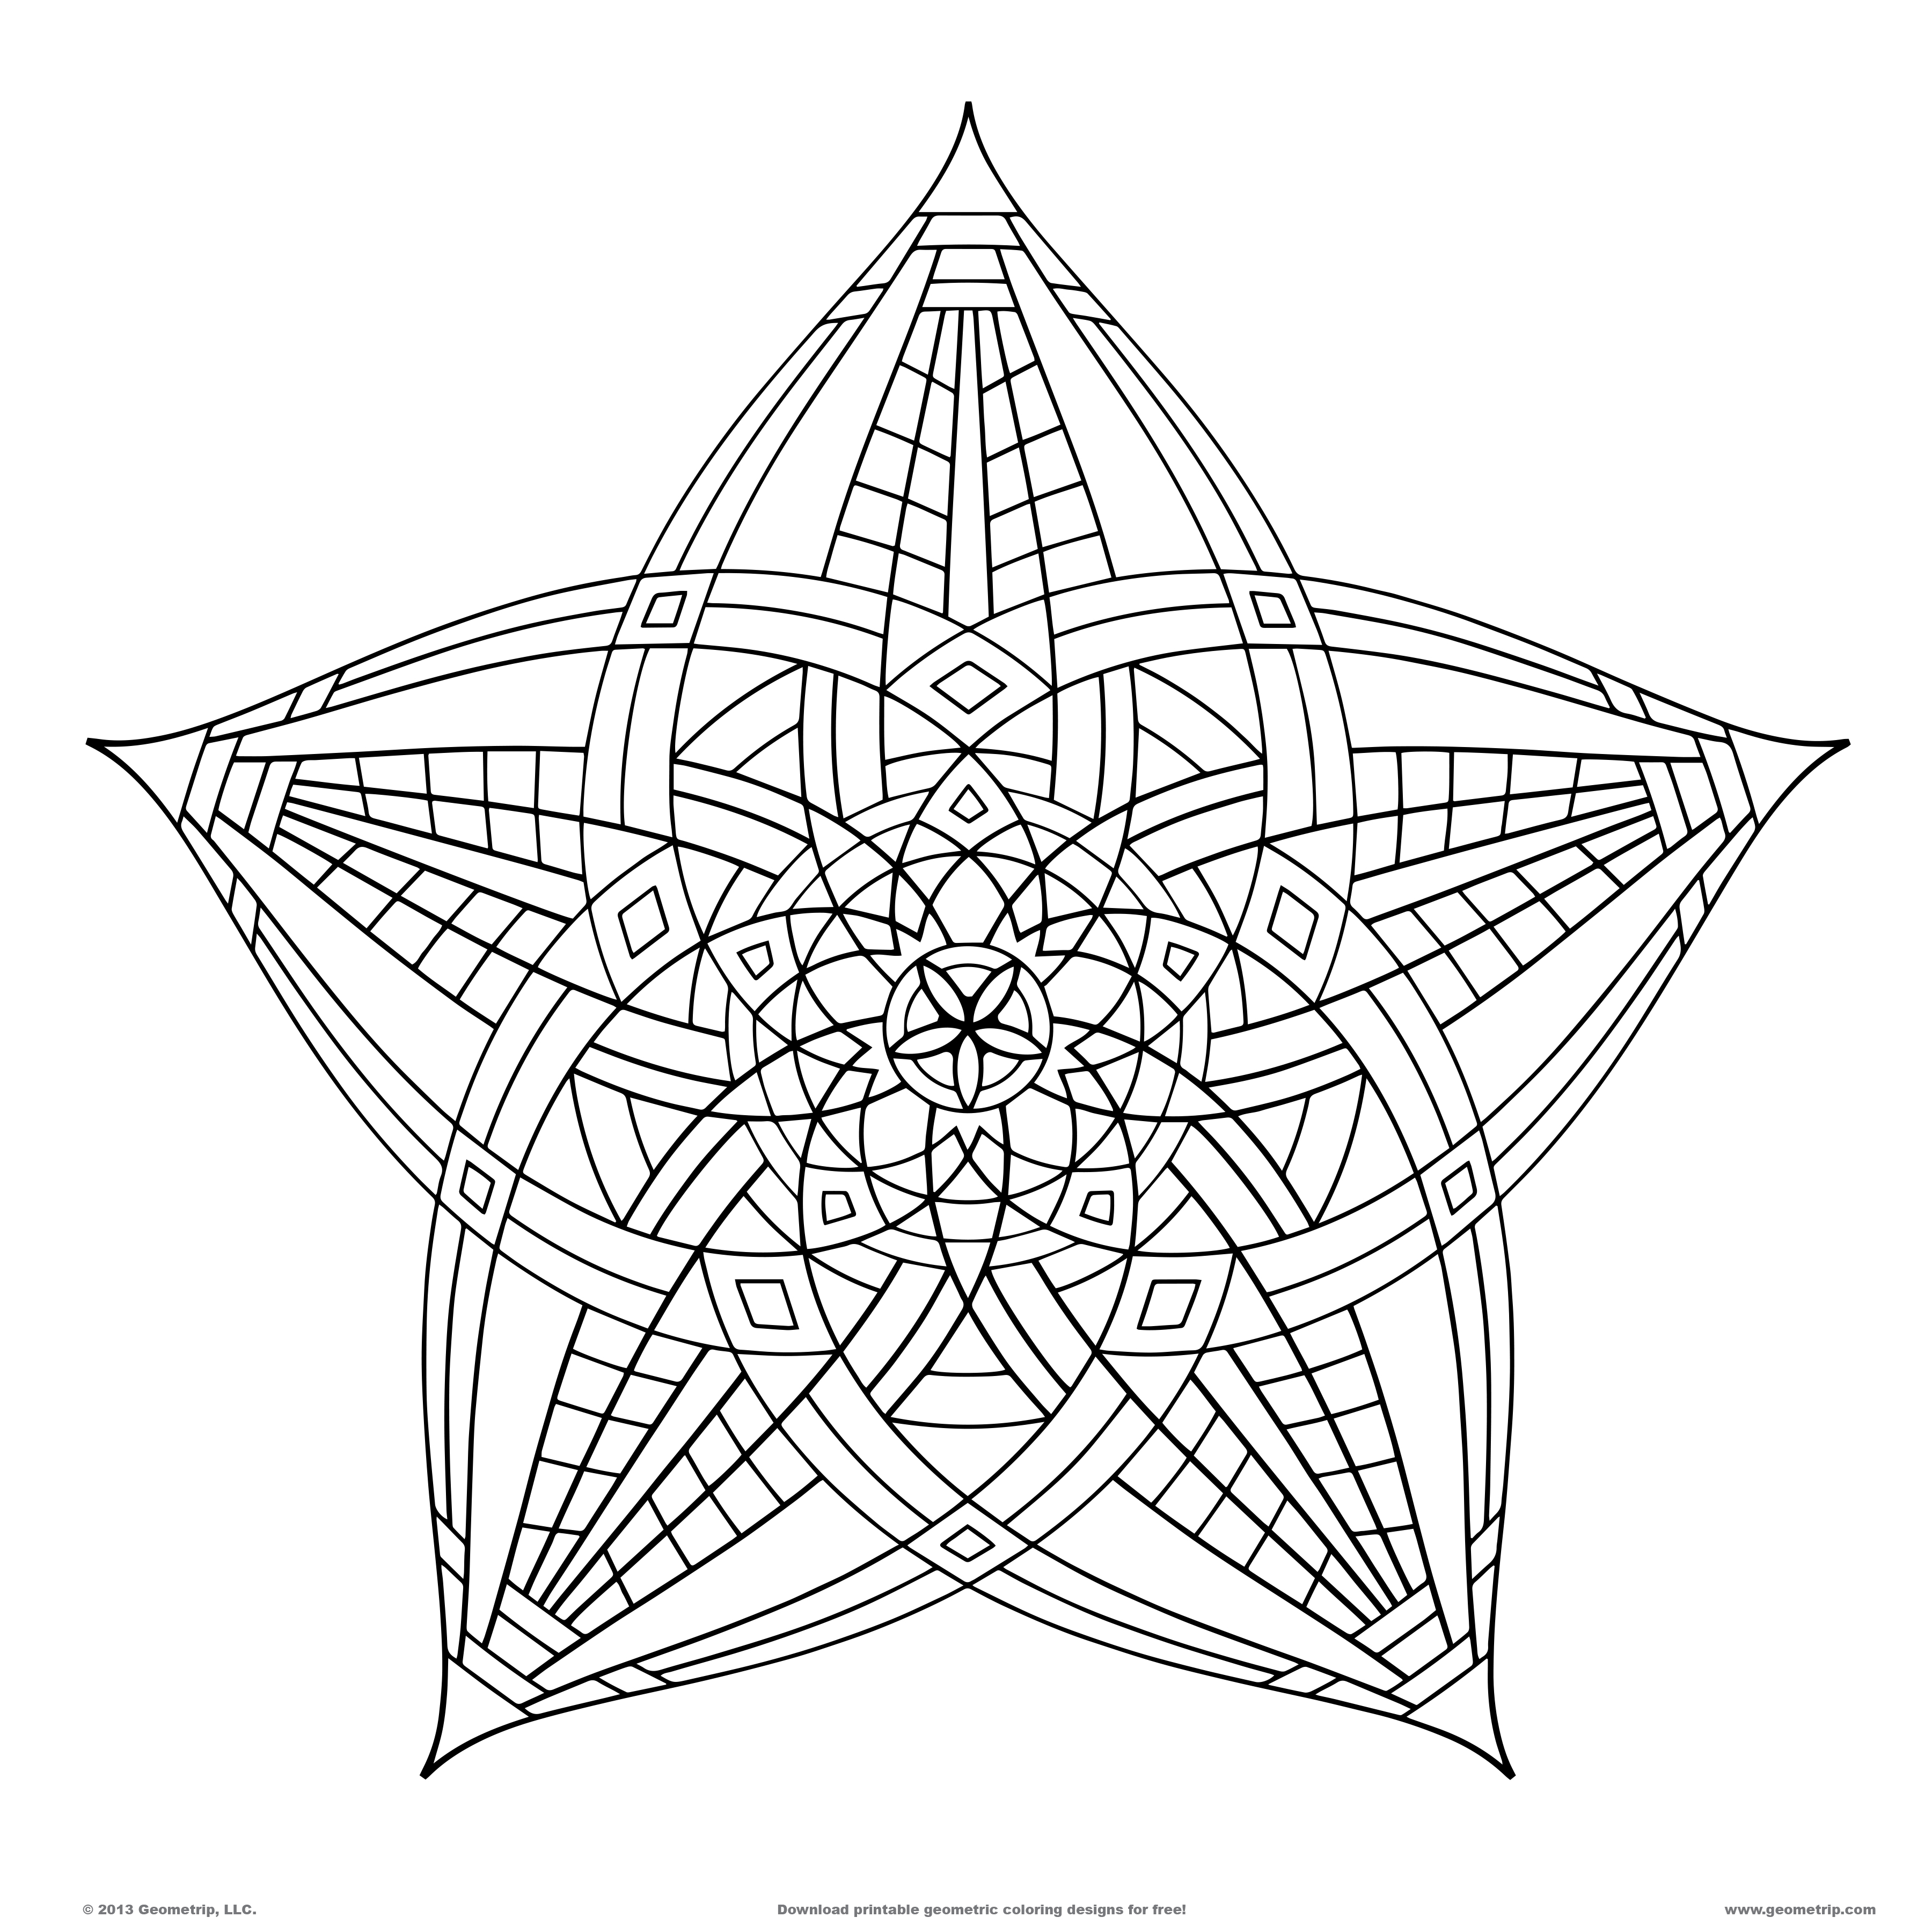 awesome coloring pages designs | 16 Cool Coloring Pages Of Designs Images - Cool Geometric ...